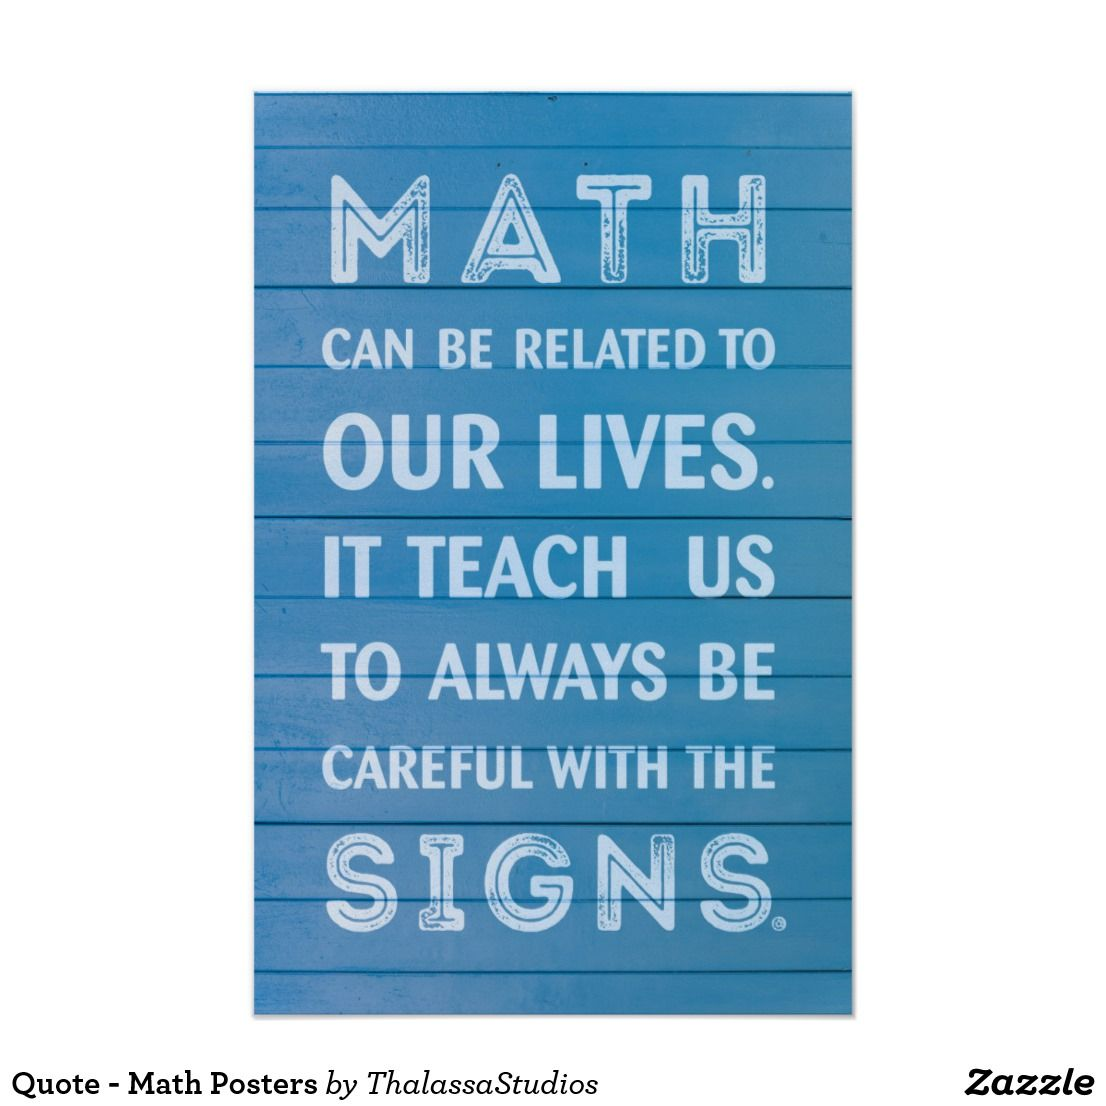 Quote Math Posters Zazzle Com In 2021 Math Quotes Funny Math Quotes Mathematics Quotes [ 1106 x 1106 Pixel ]